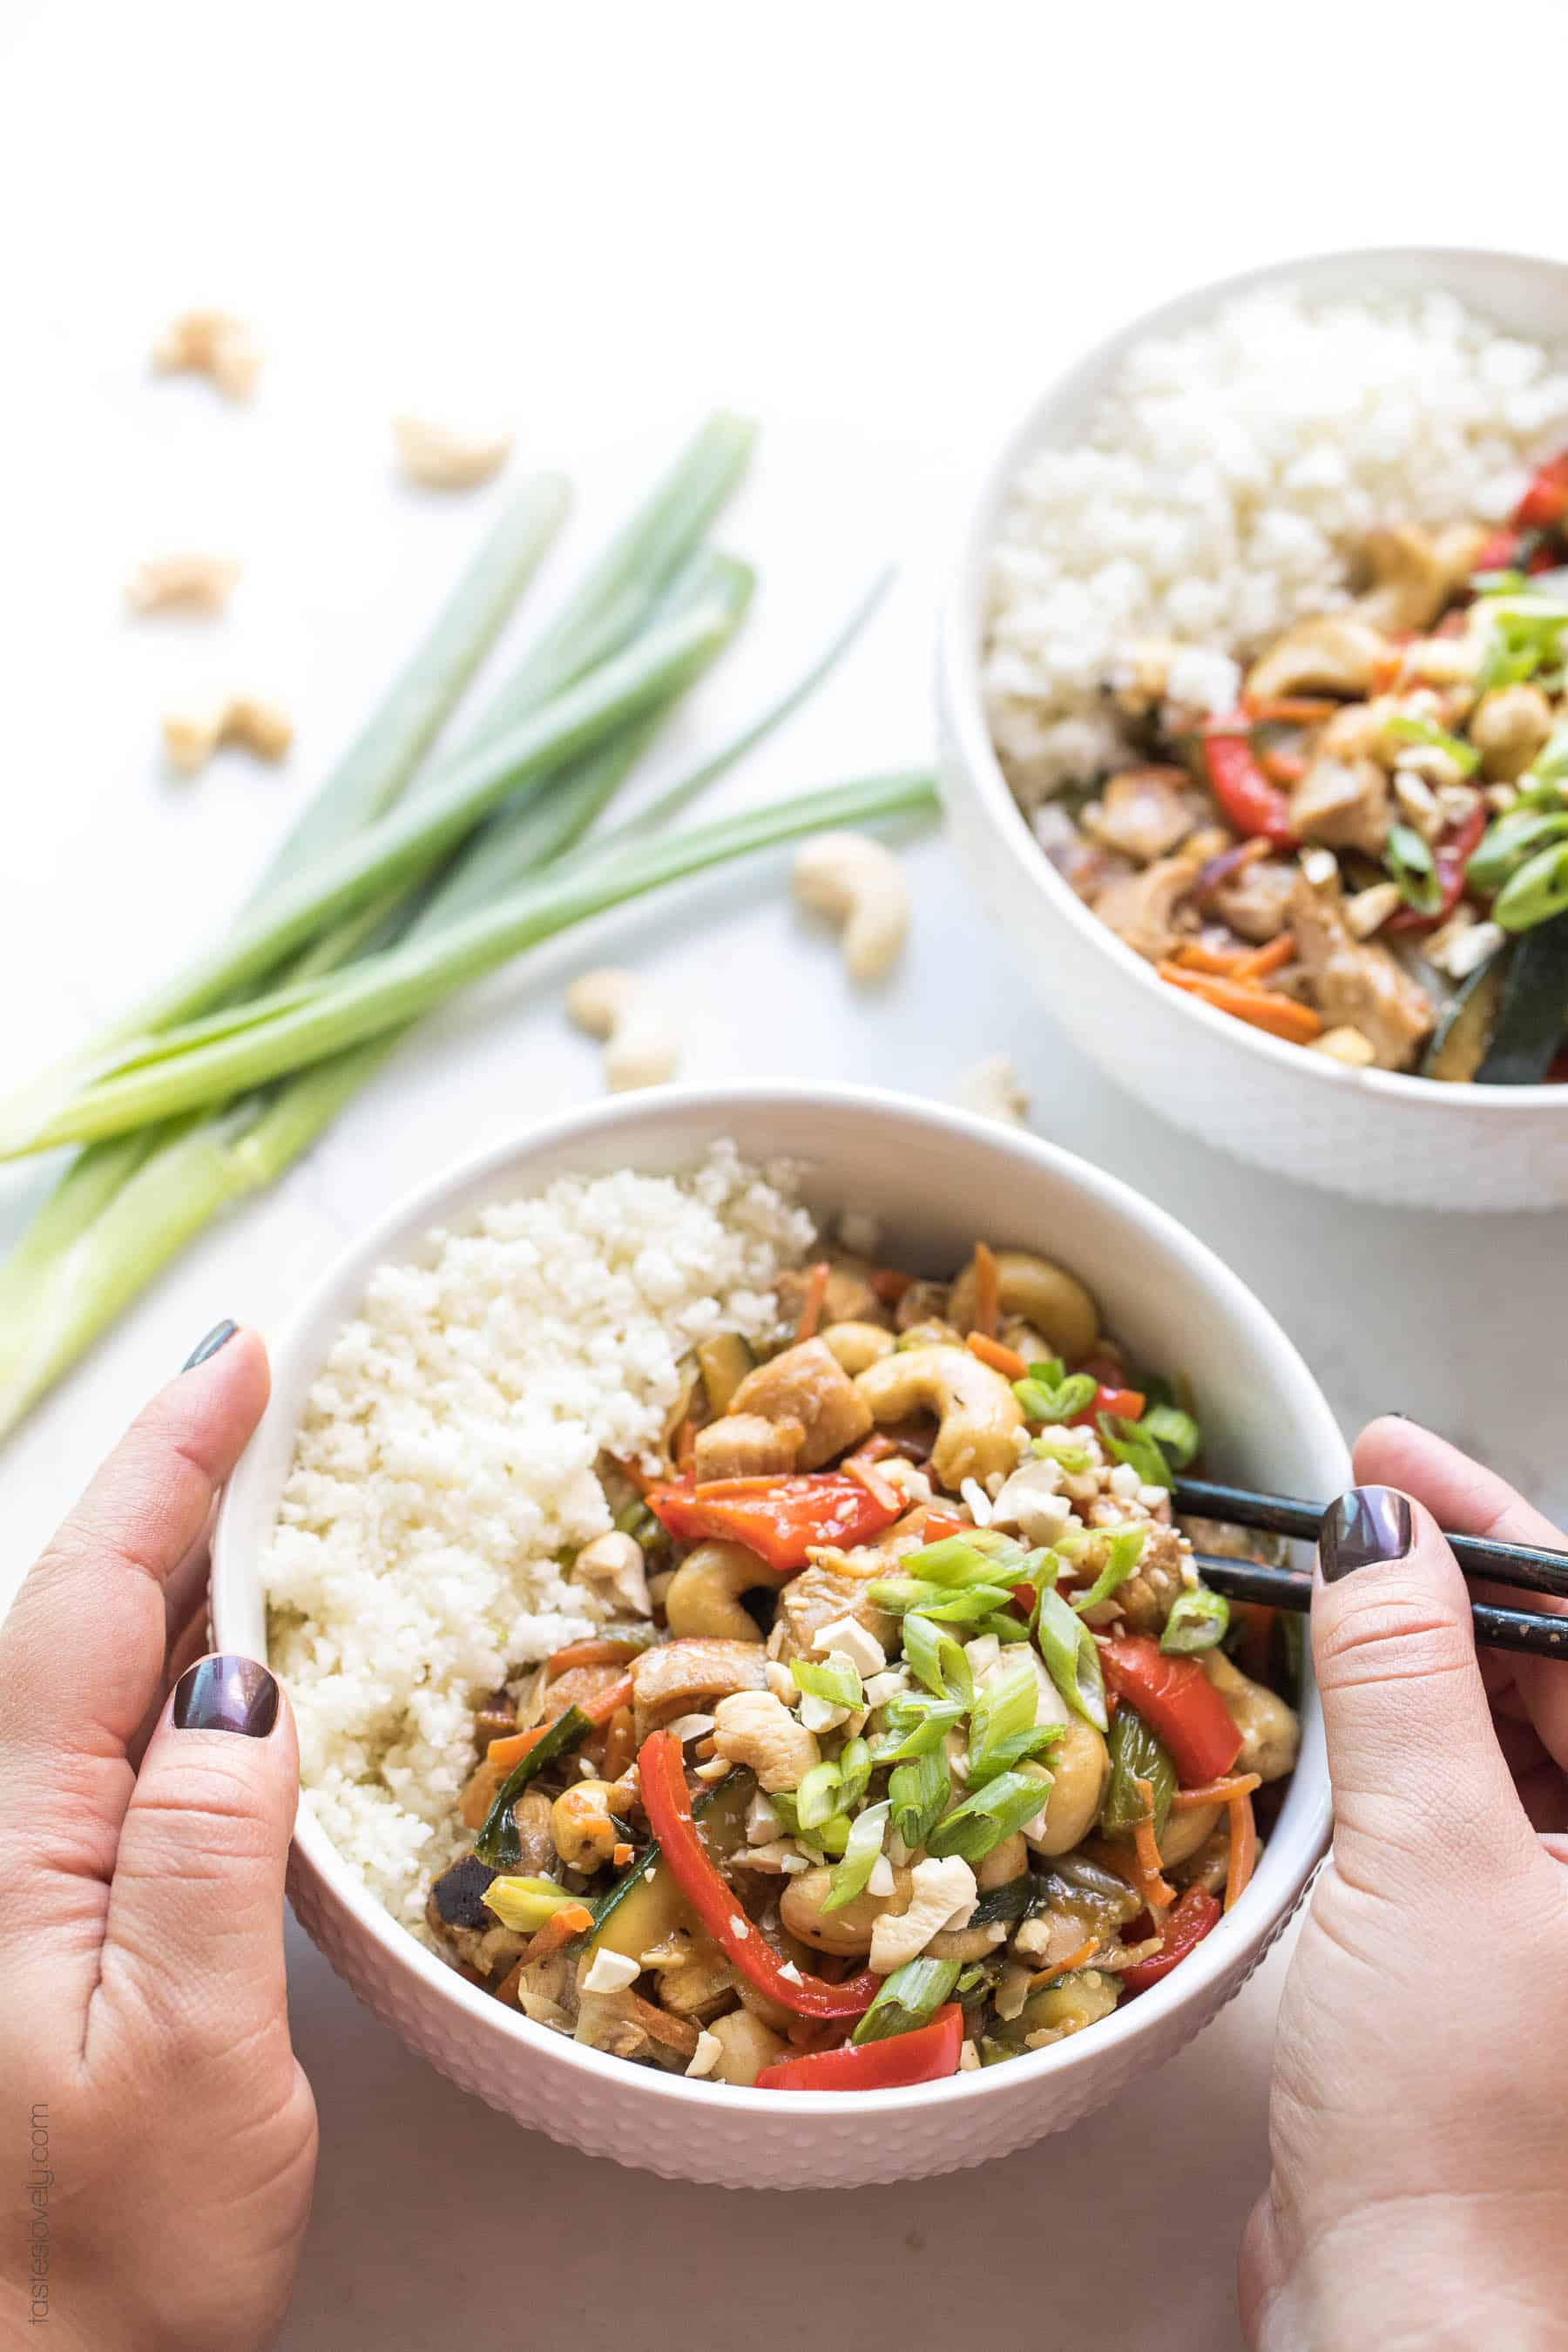 2 hands holding a bowl with chicken stir fry and cauliflower rice and chopsticks